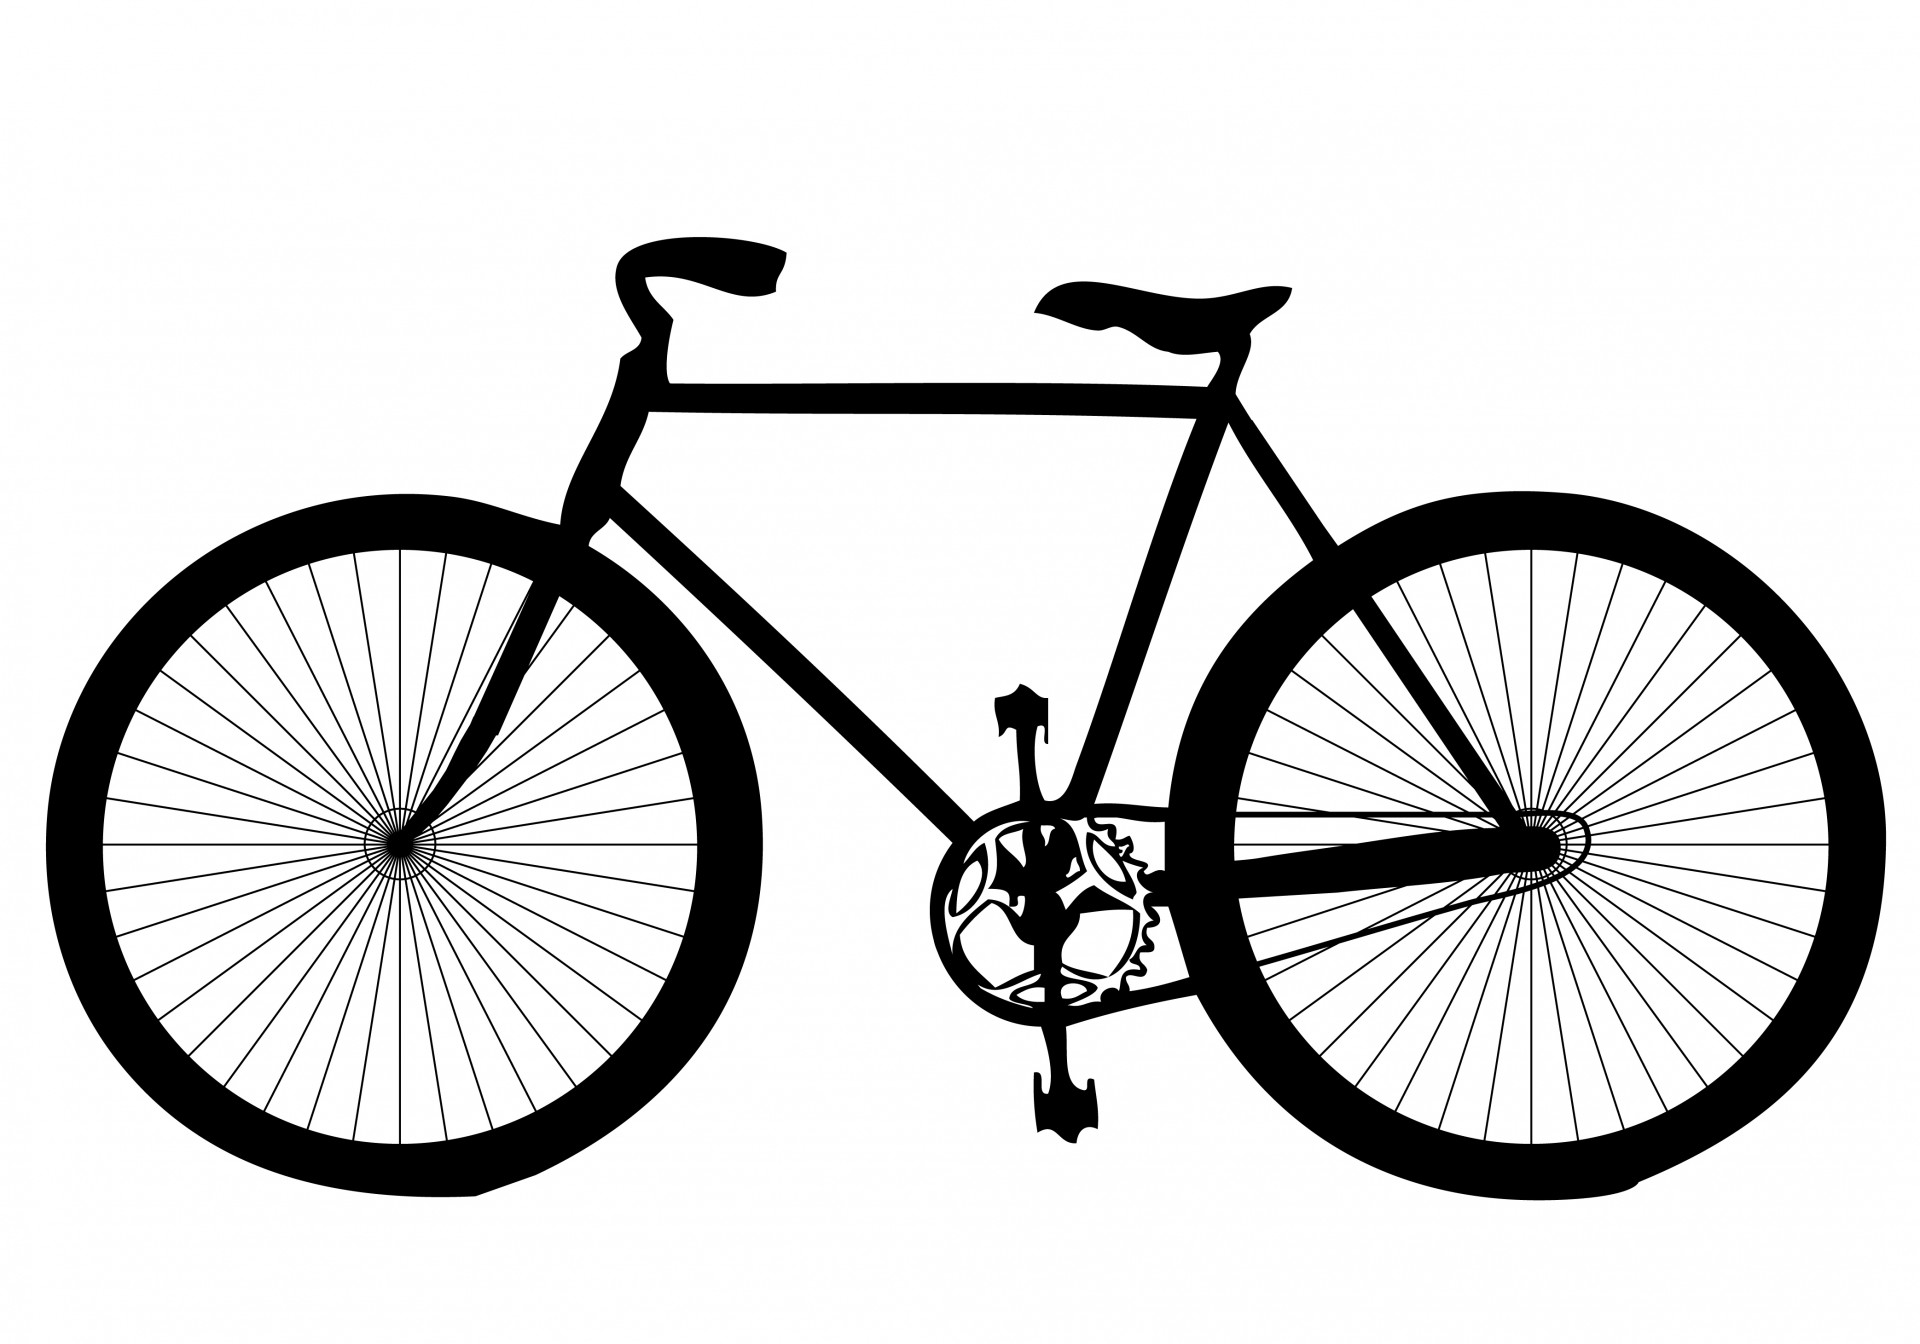 Cycling clipart. Bicycle free stock photo